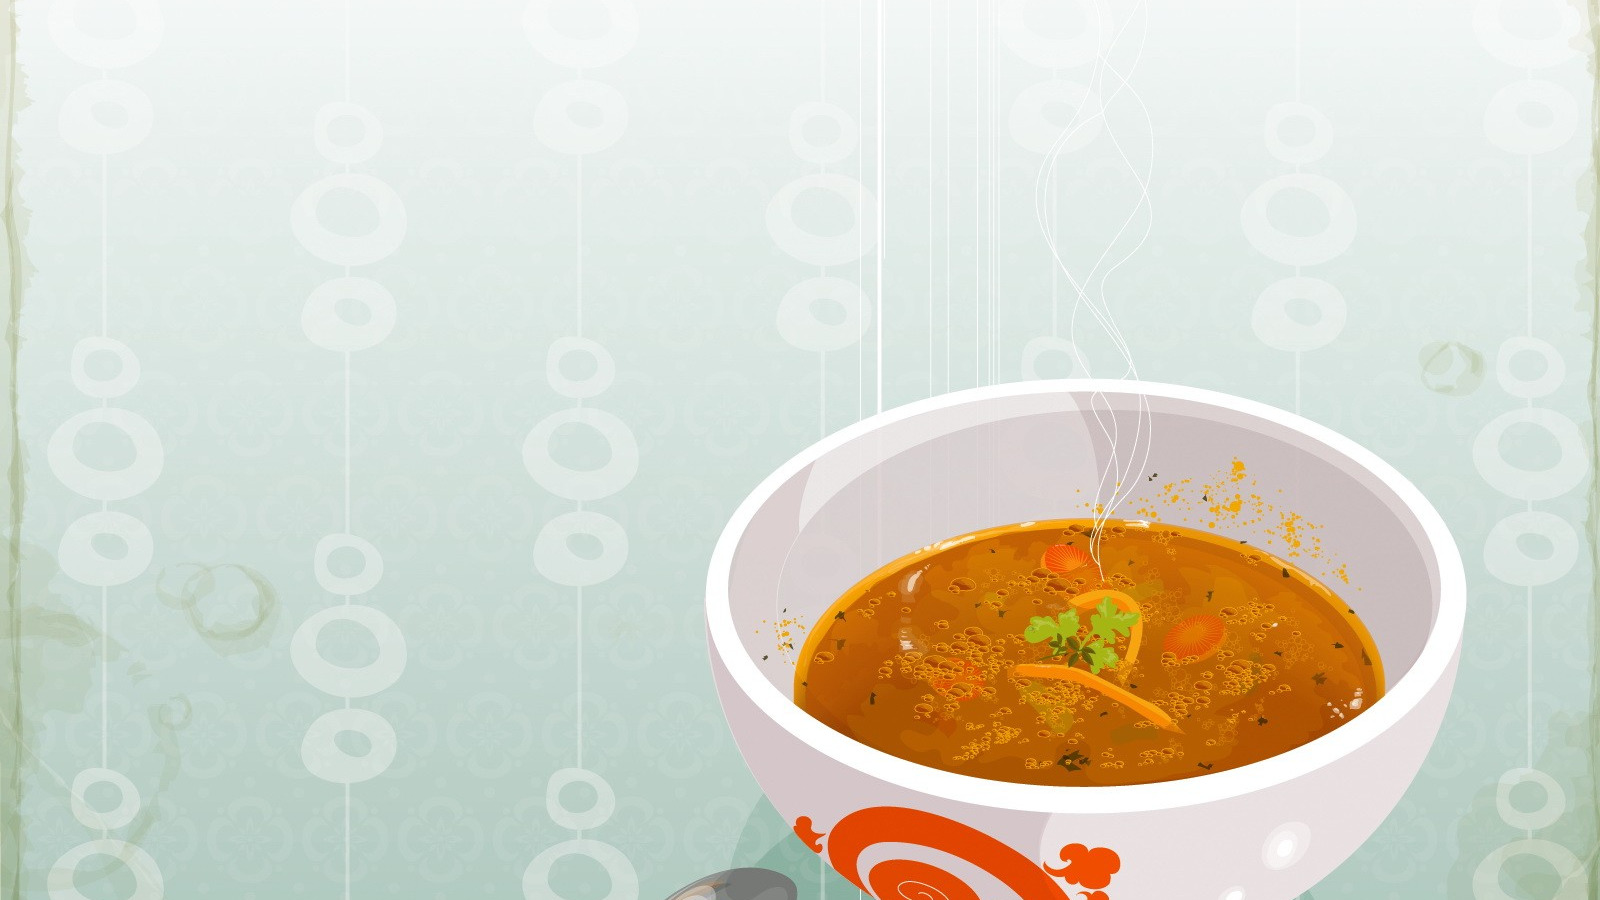 marketing mix management for spoon soup